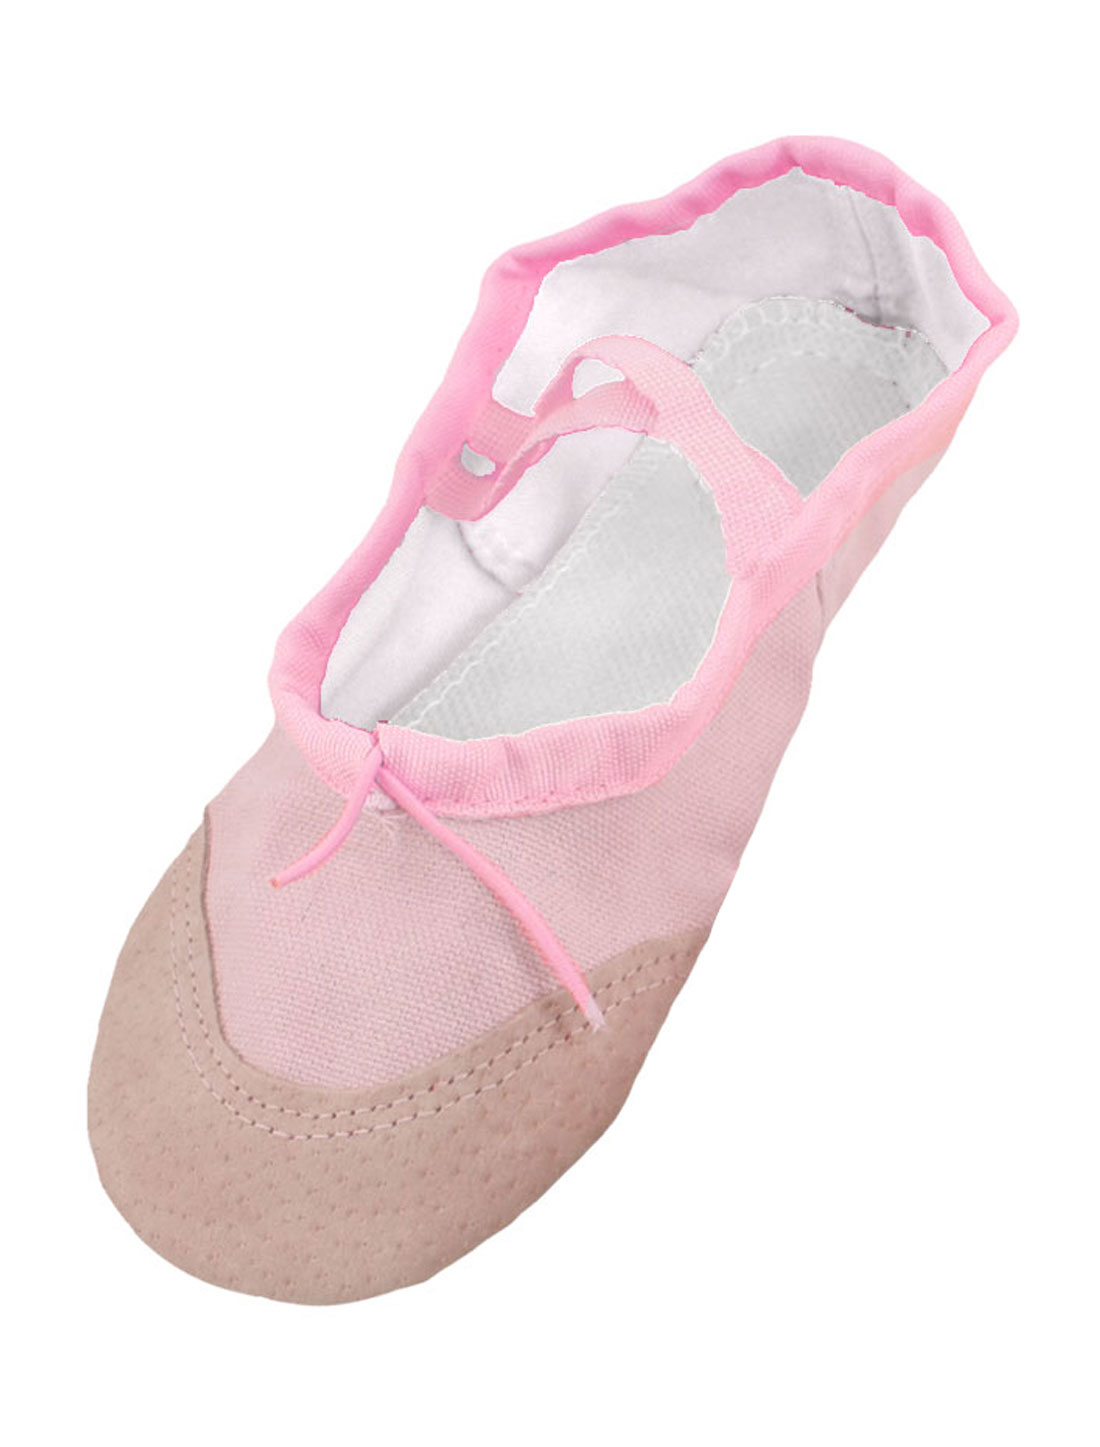 Girls Pink Elastic Drawstring Ballet Dance Flats Shoes EU 30